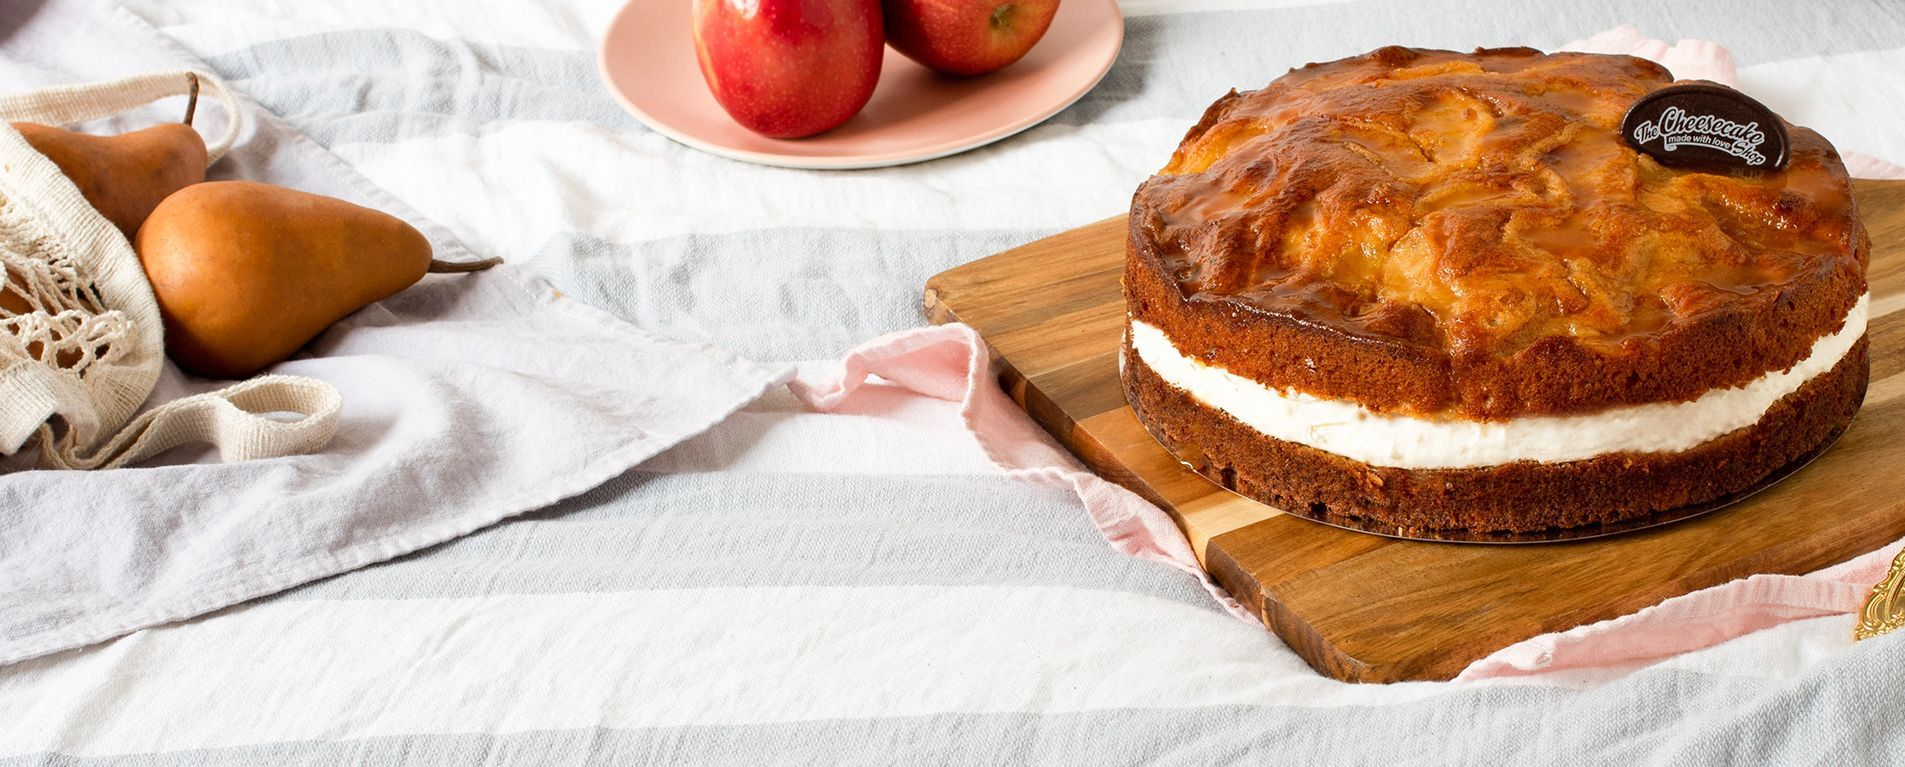 APPLE & PEAR CAKE